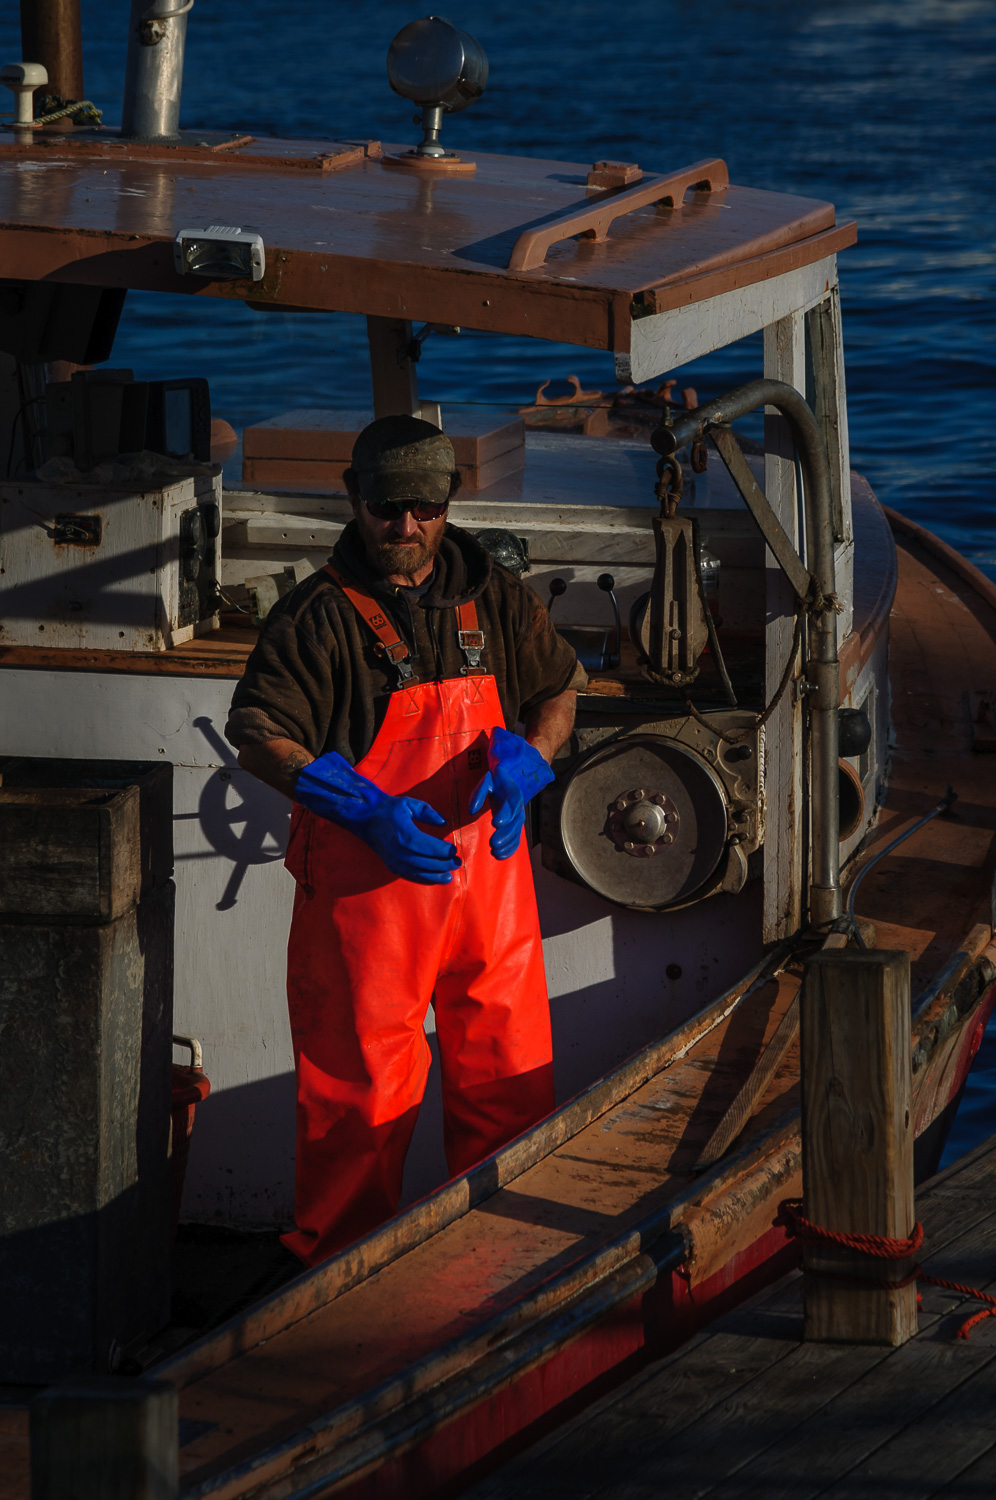 Ready to unload the catch